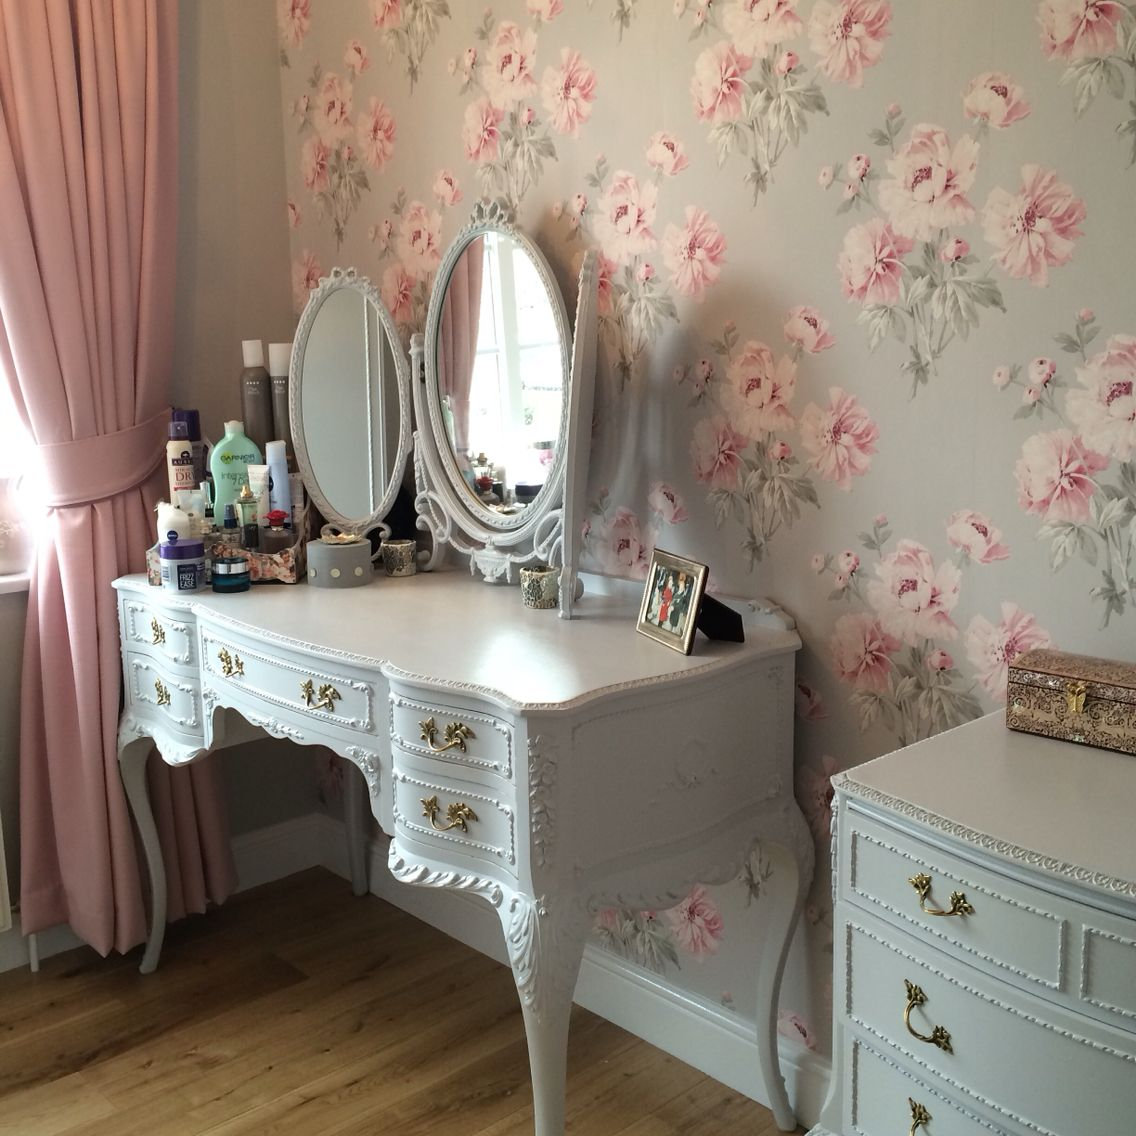 New Oak Floor Boards Laura Ashley Wallpaper Made To Measure Curtains From Dunelm Up Cycled Chalk Painted Furniture That I Bought Second Hand